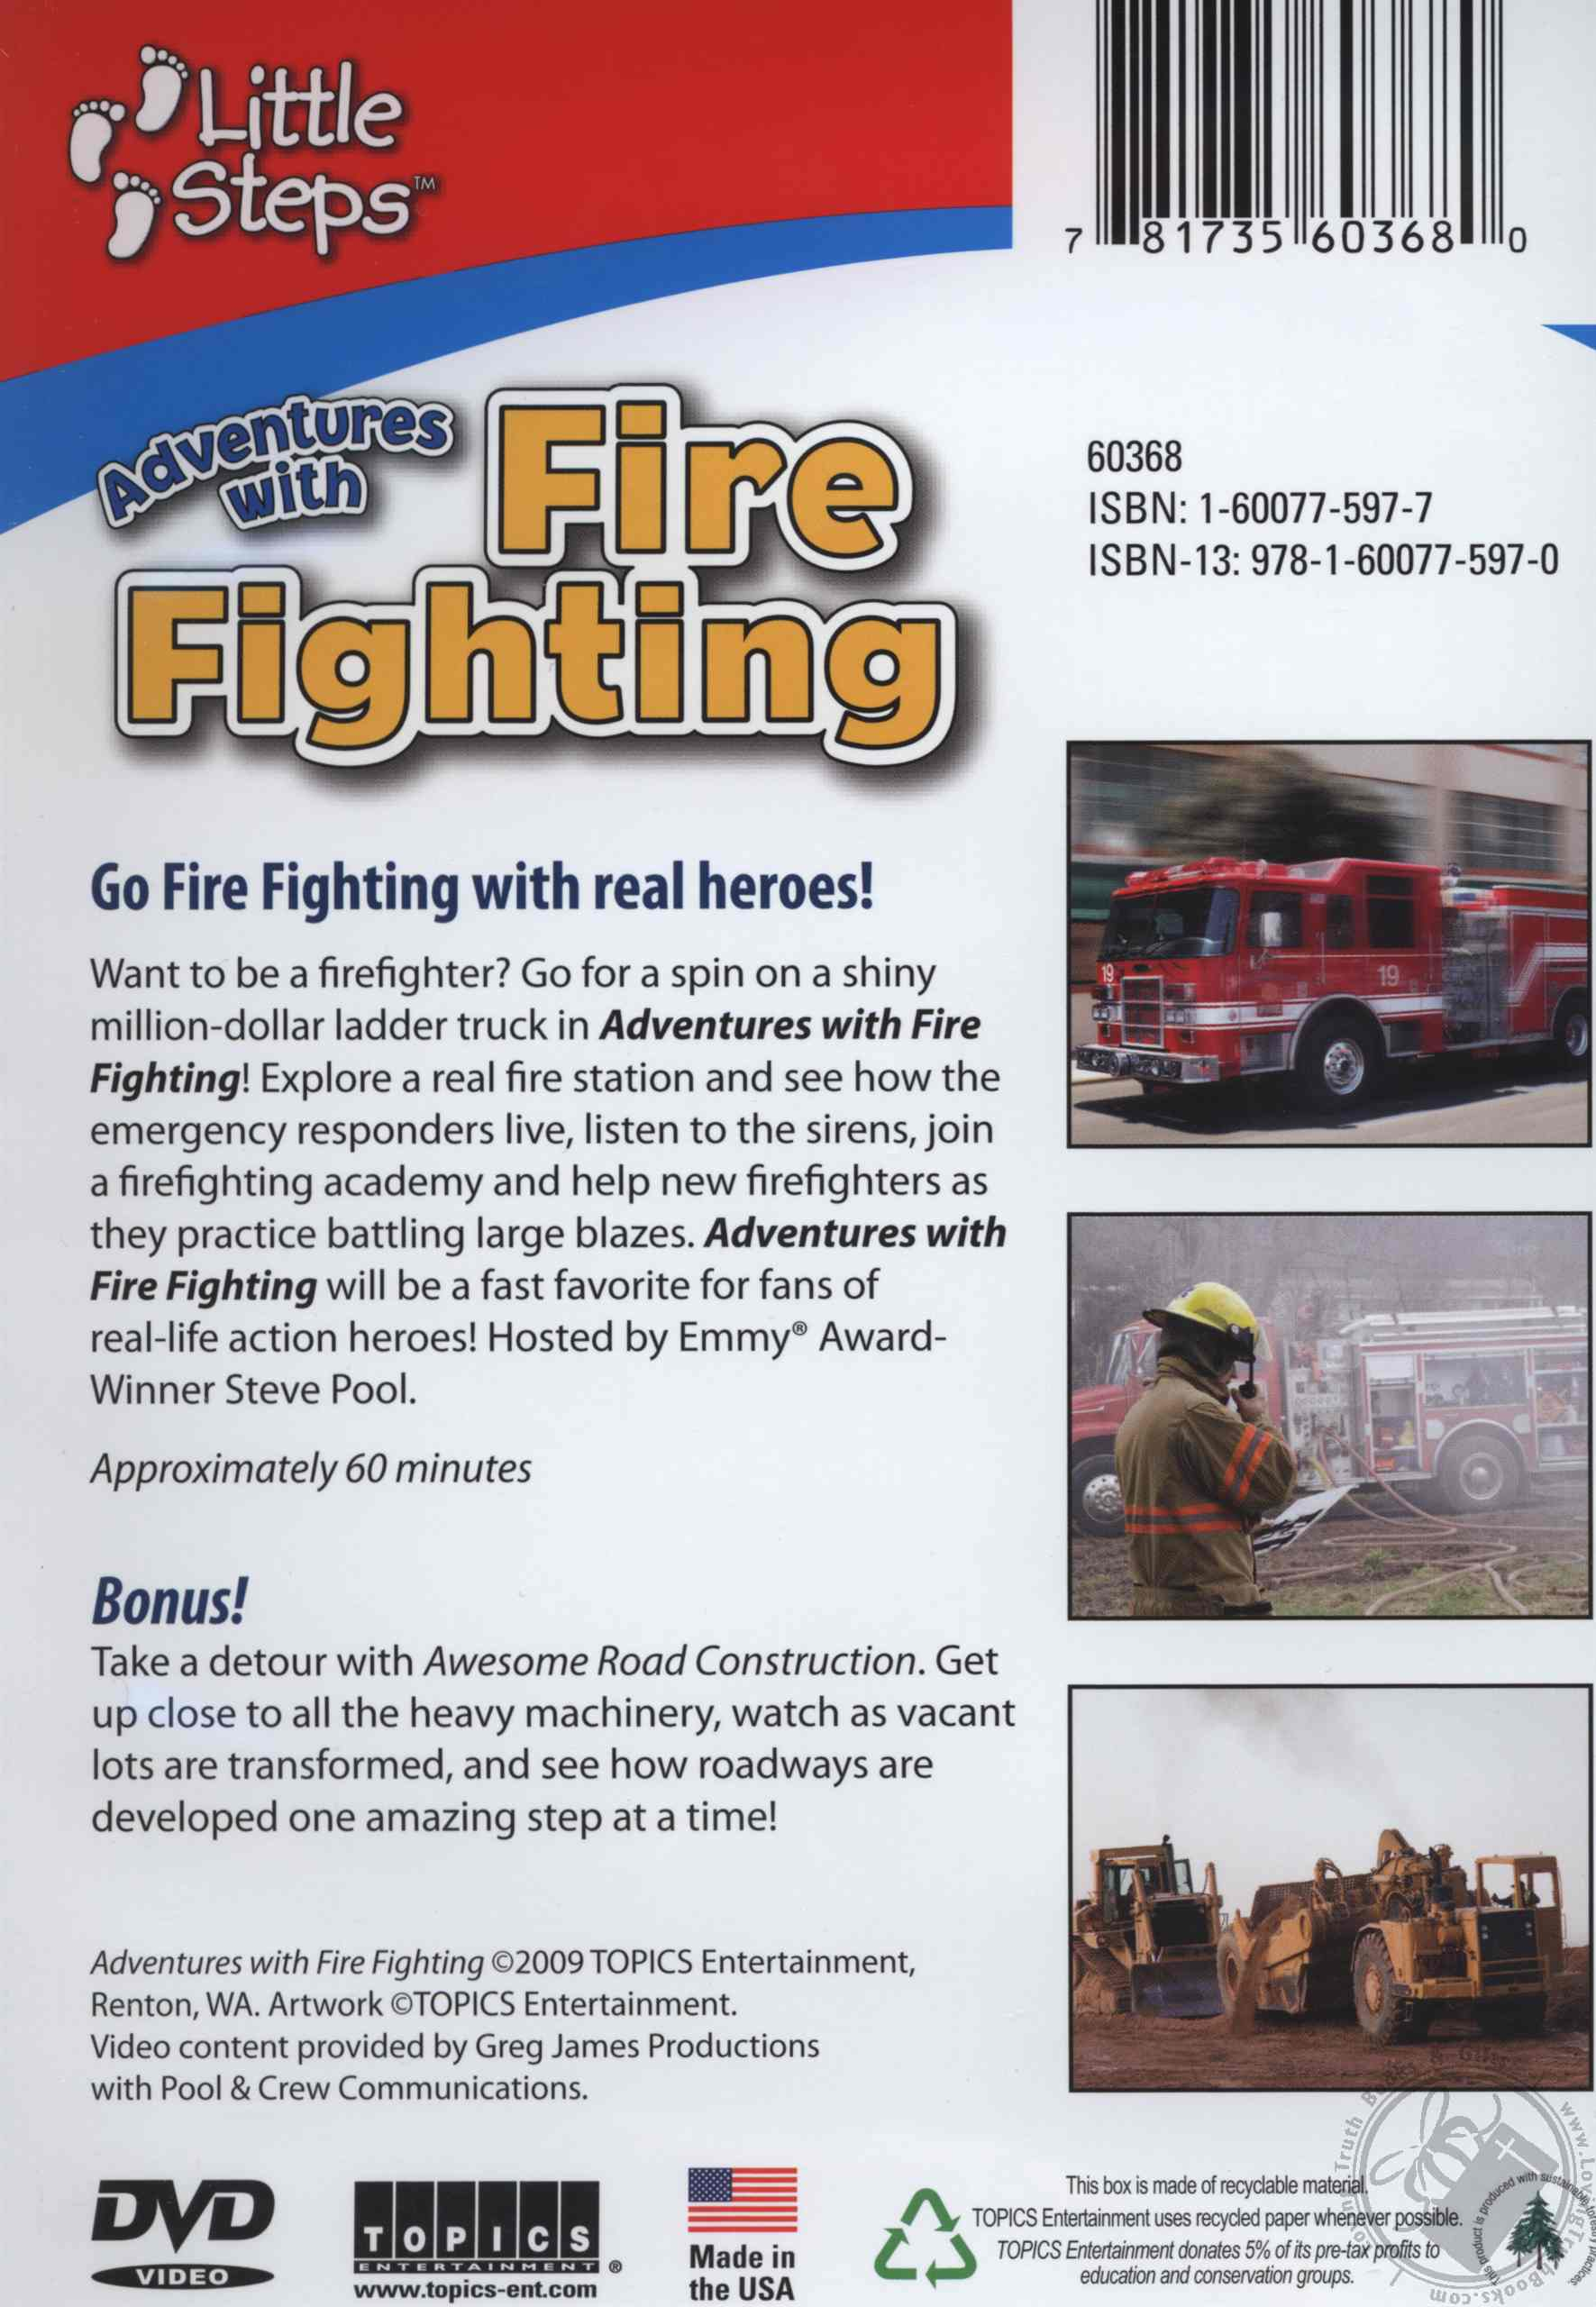 Little Steps Adventures with Firefighting with bonus